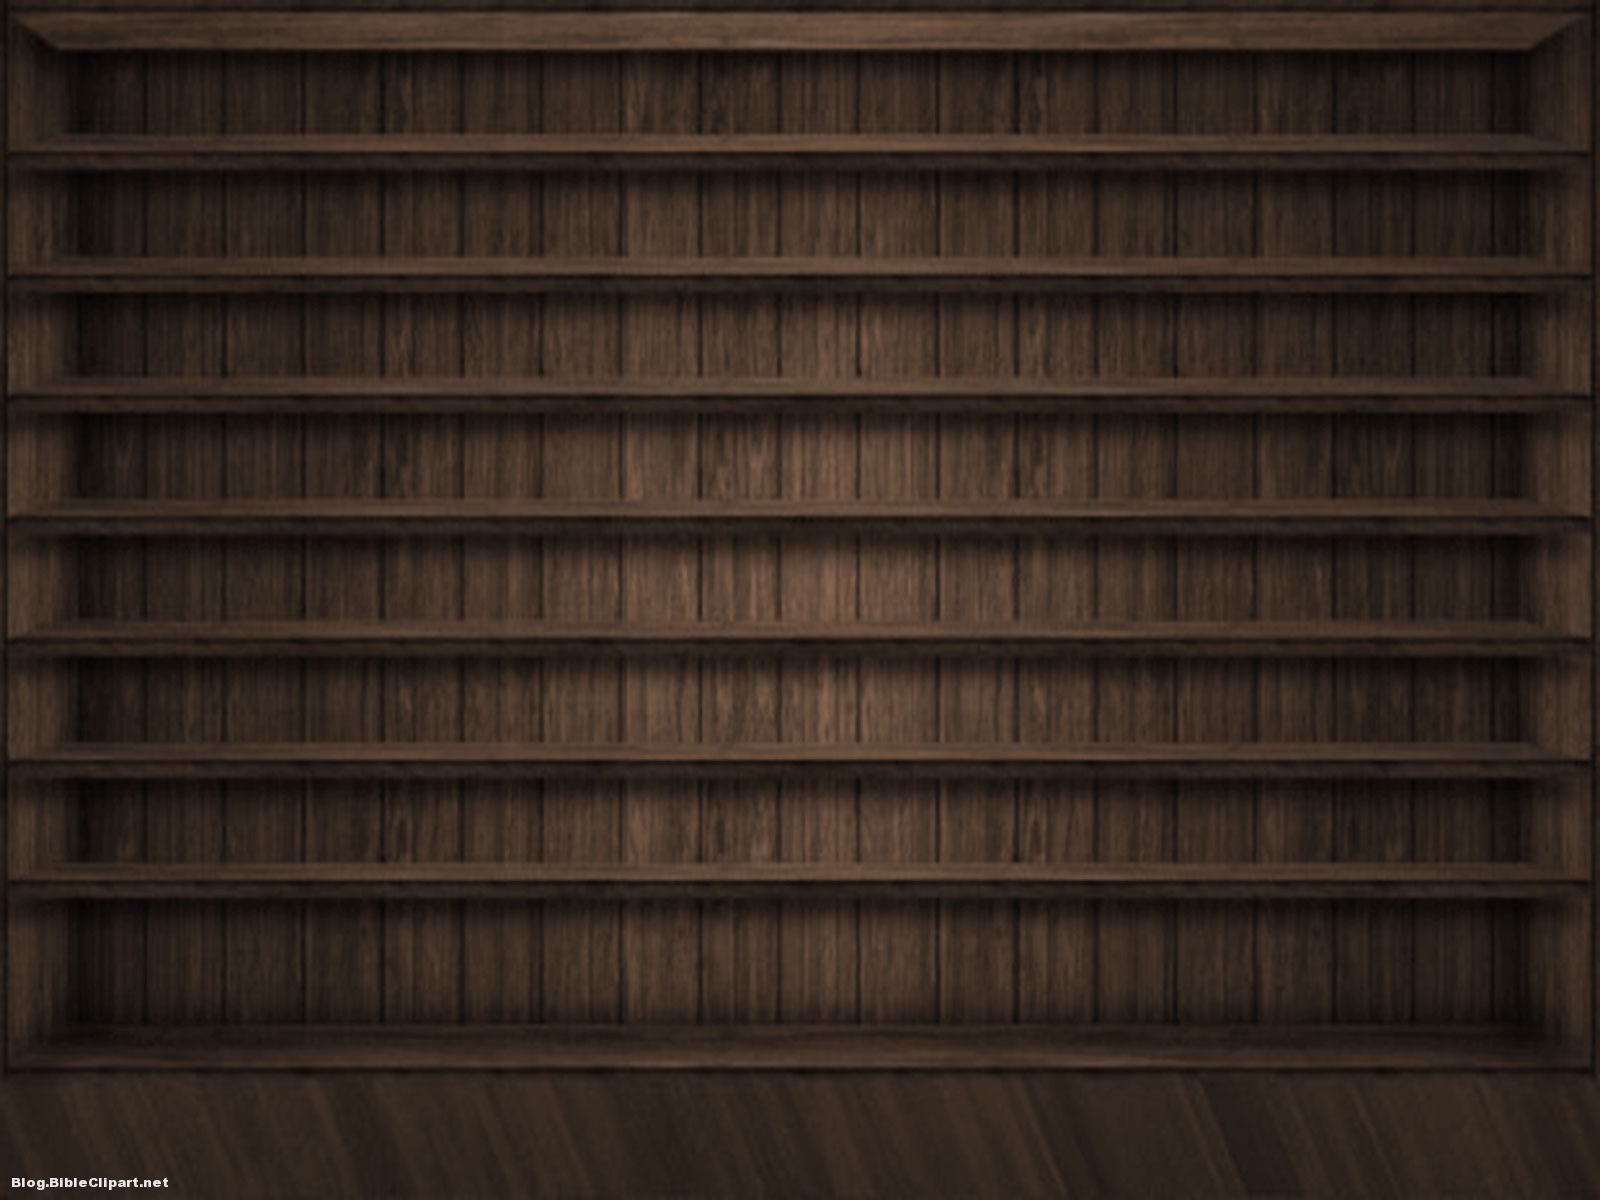 Dark Brown Wood Bookcase Background